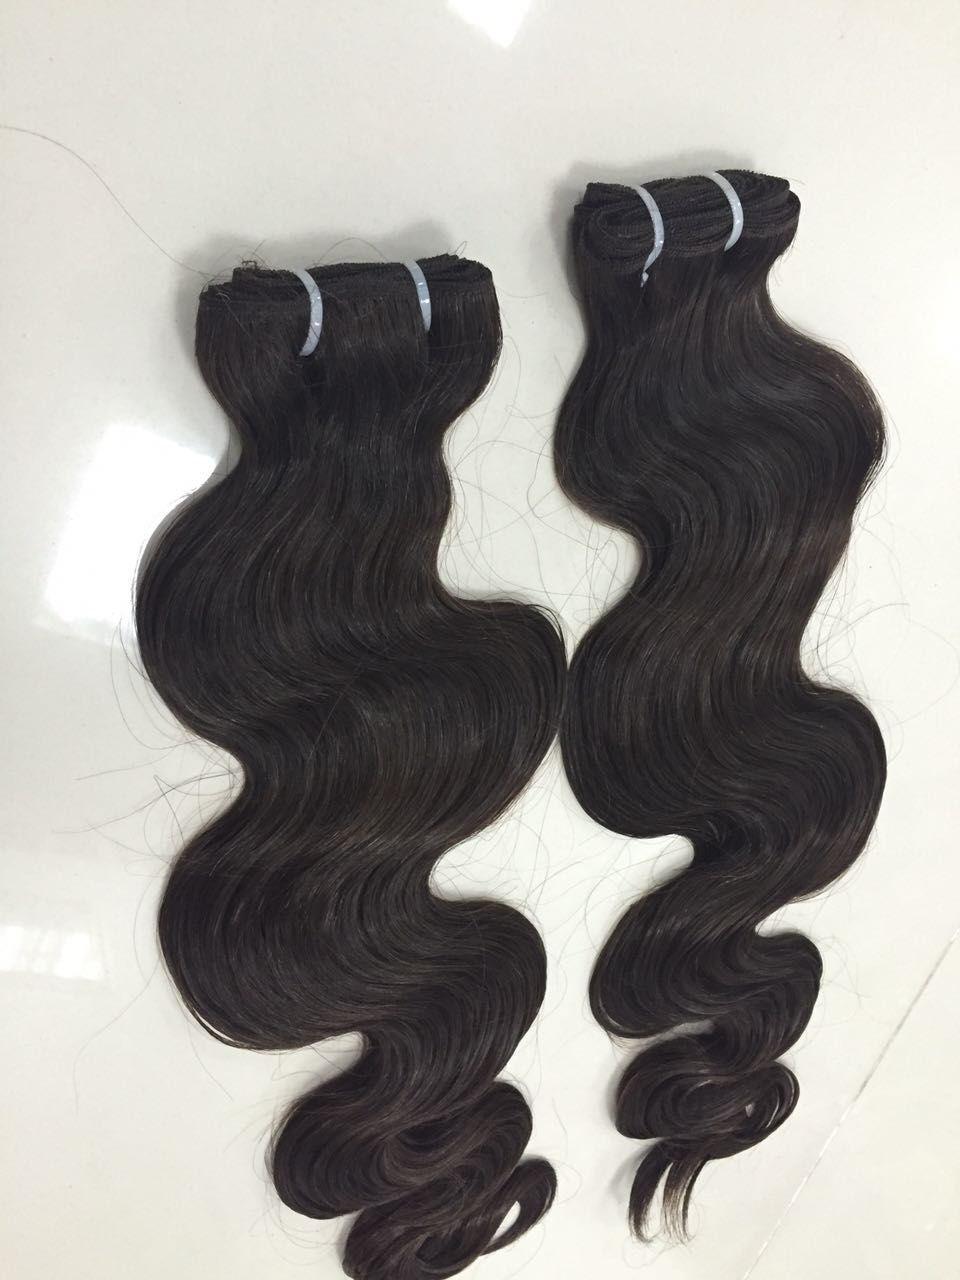 10 Inches Wavy Hair Extensions